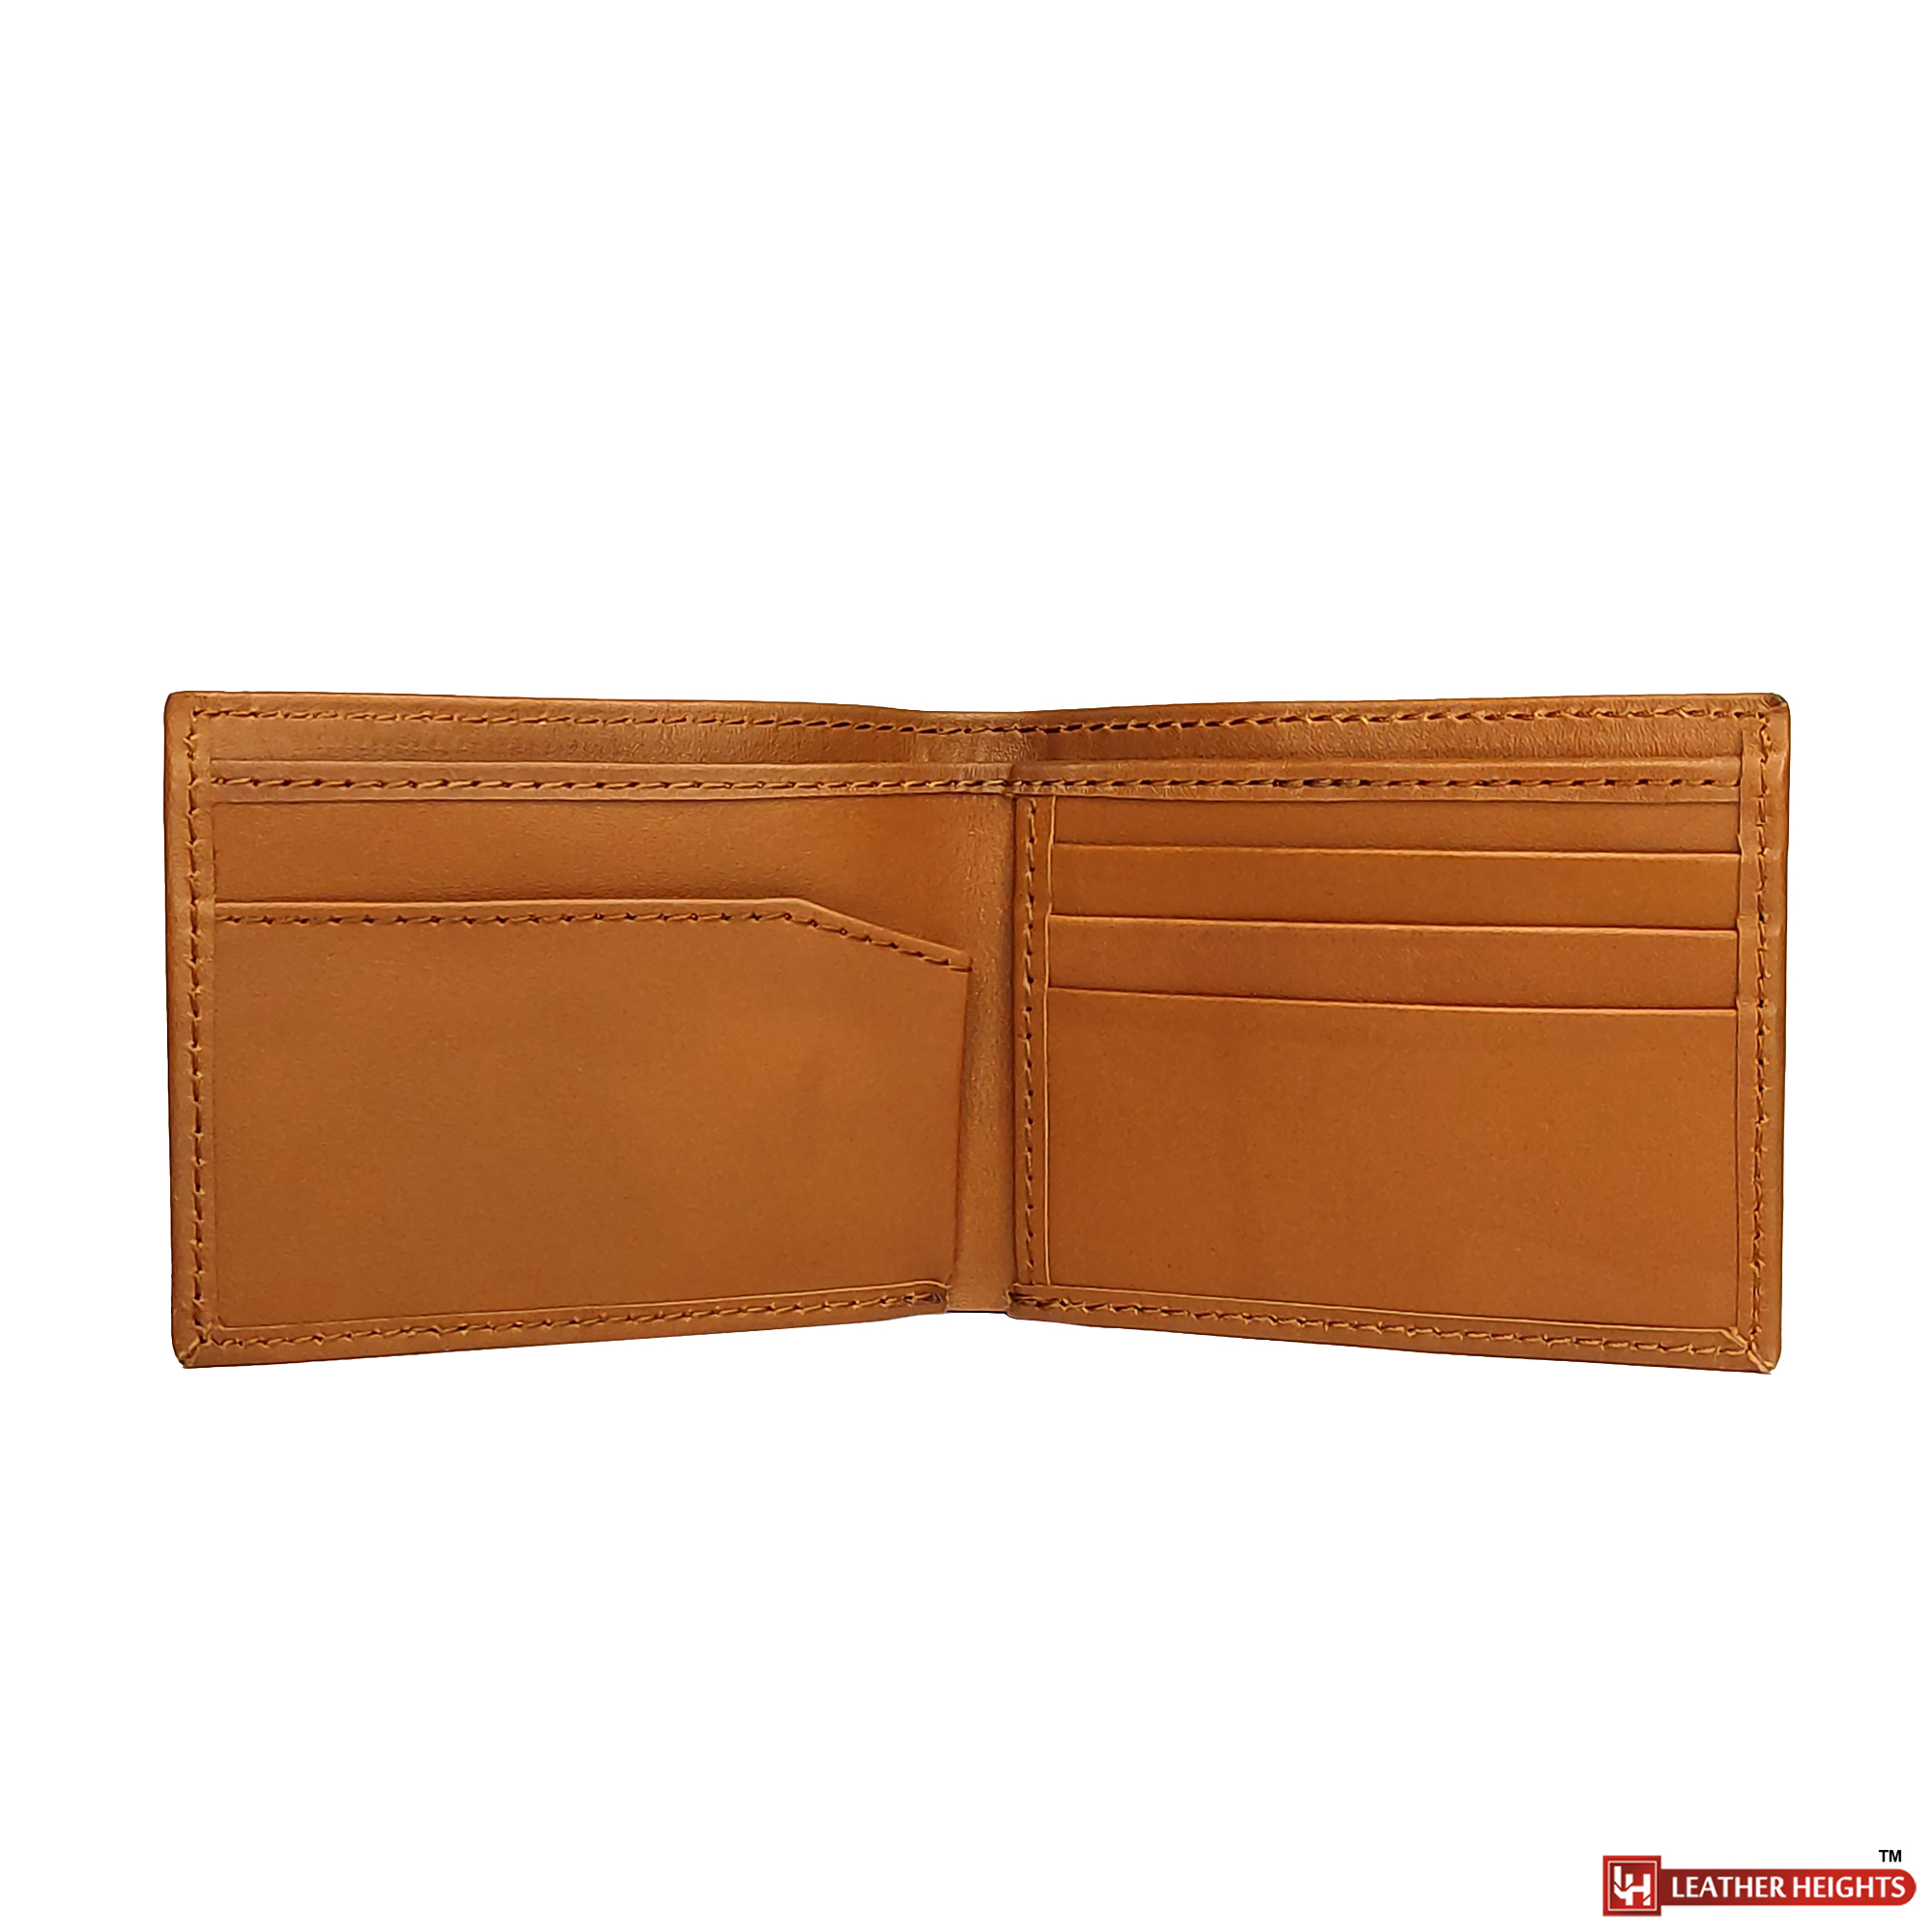 Mini brown leather wallet for Men.